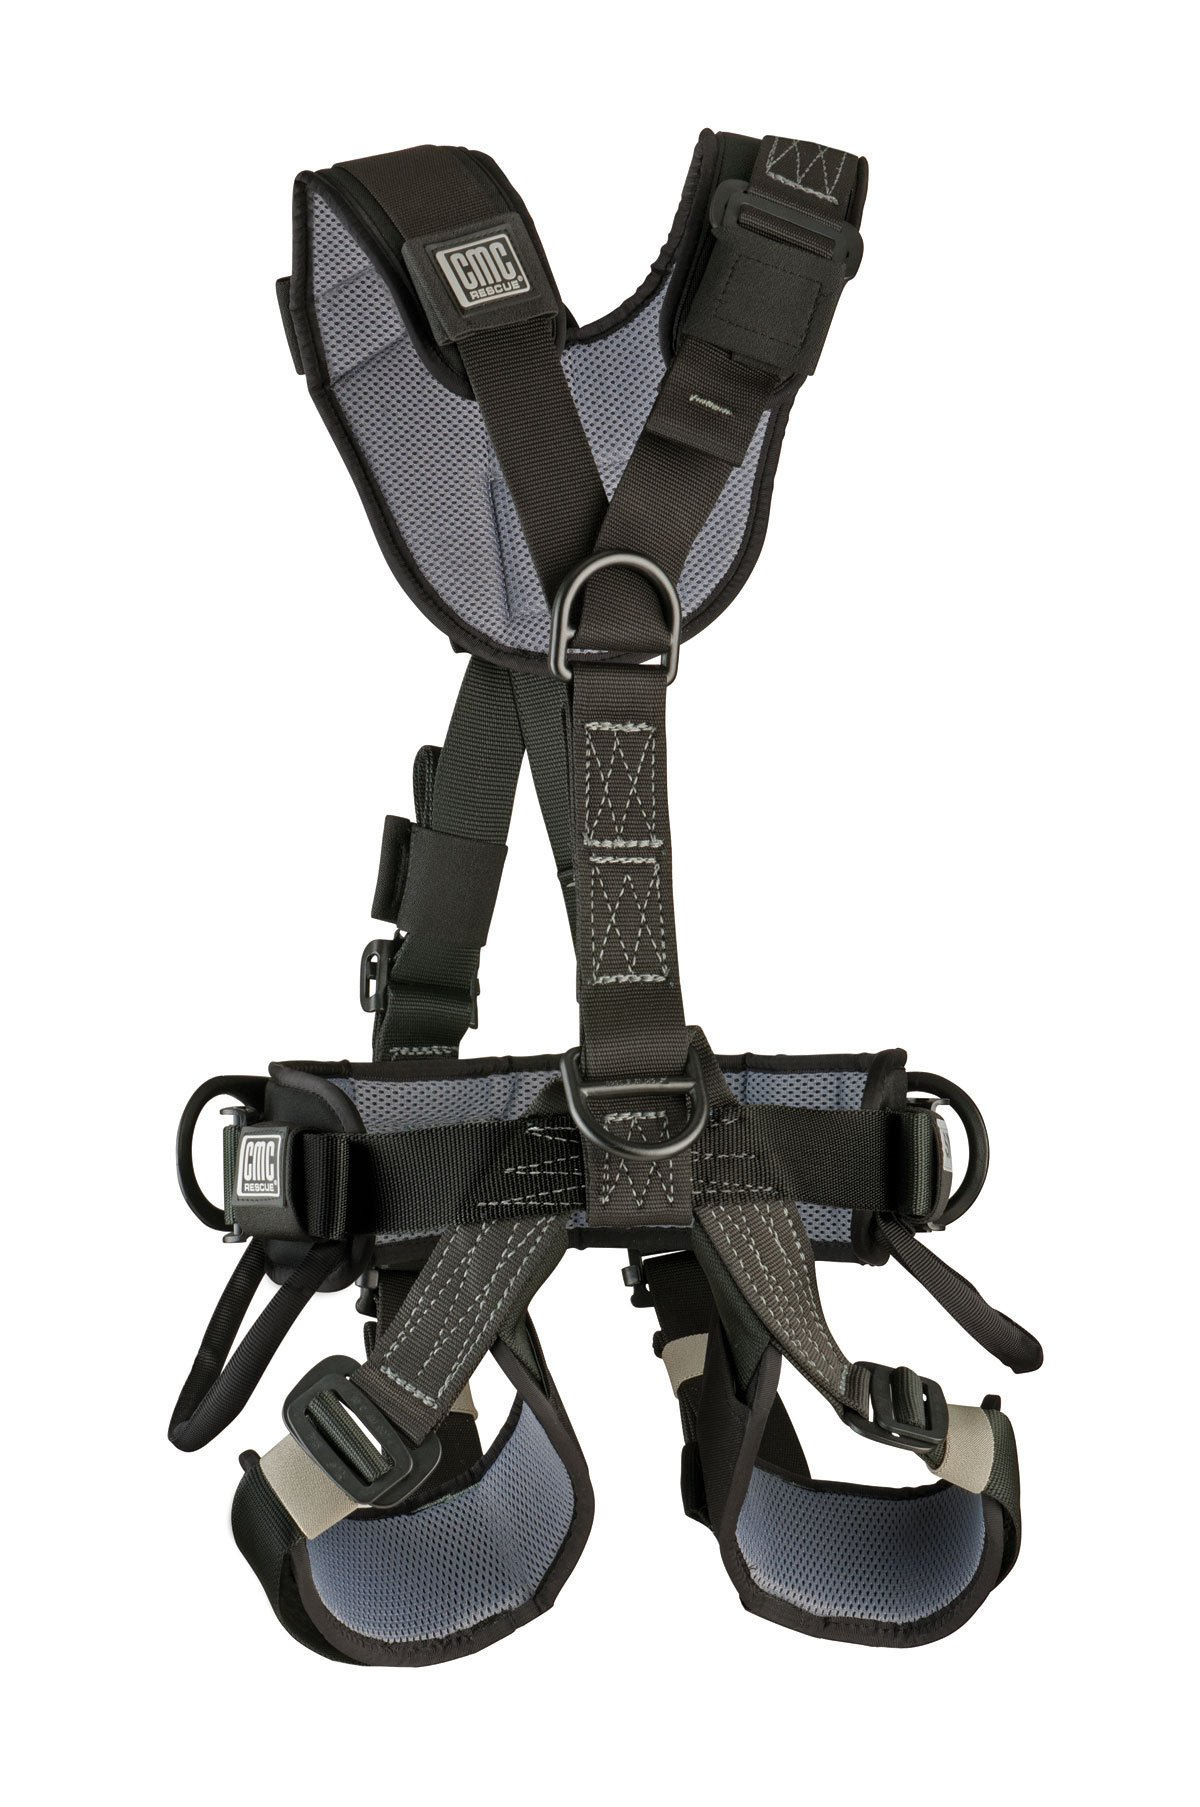 CMC Rescue 202832 RIGGERS HARNESS S/M